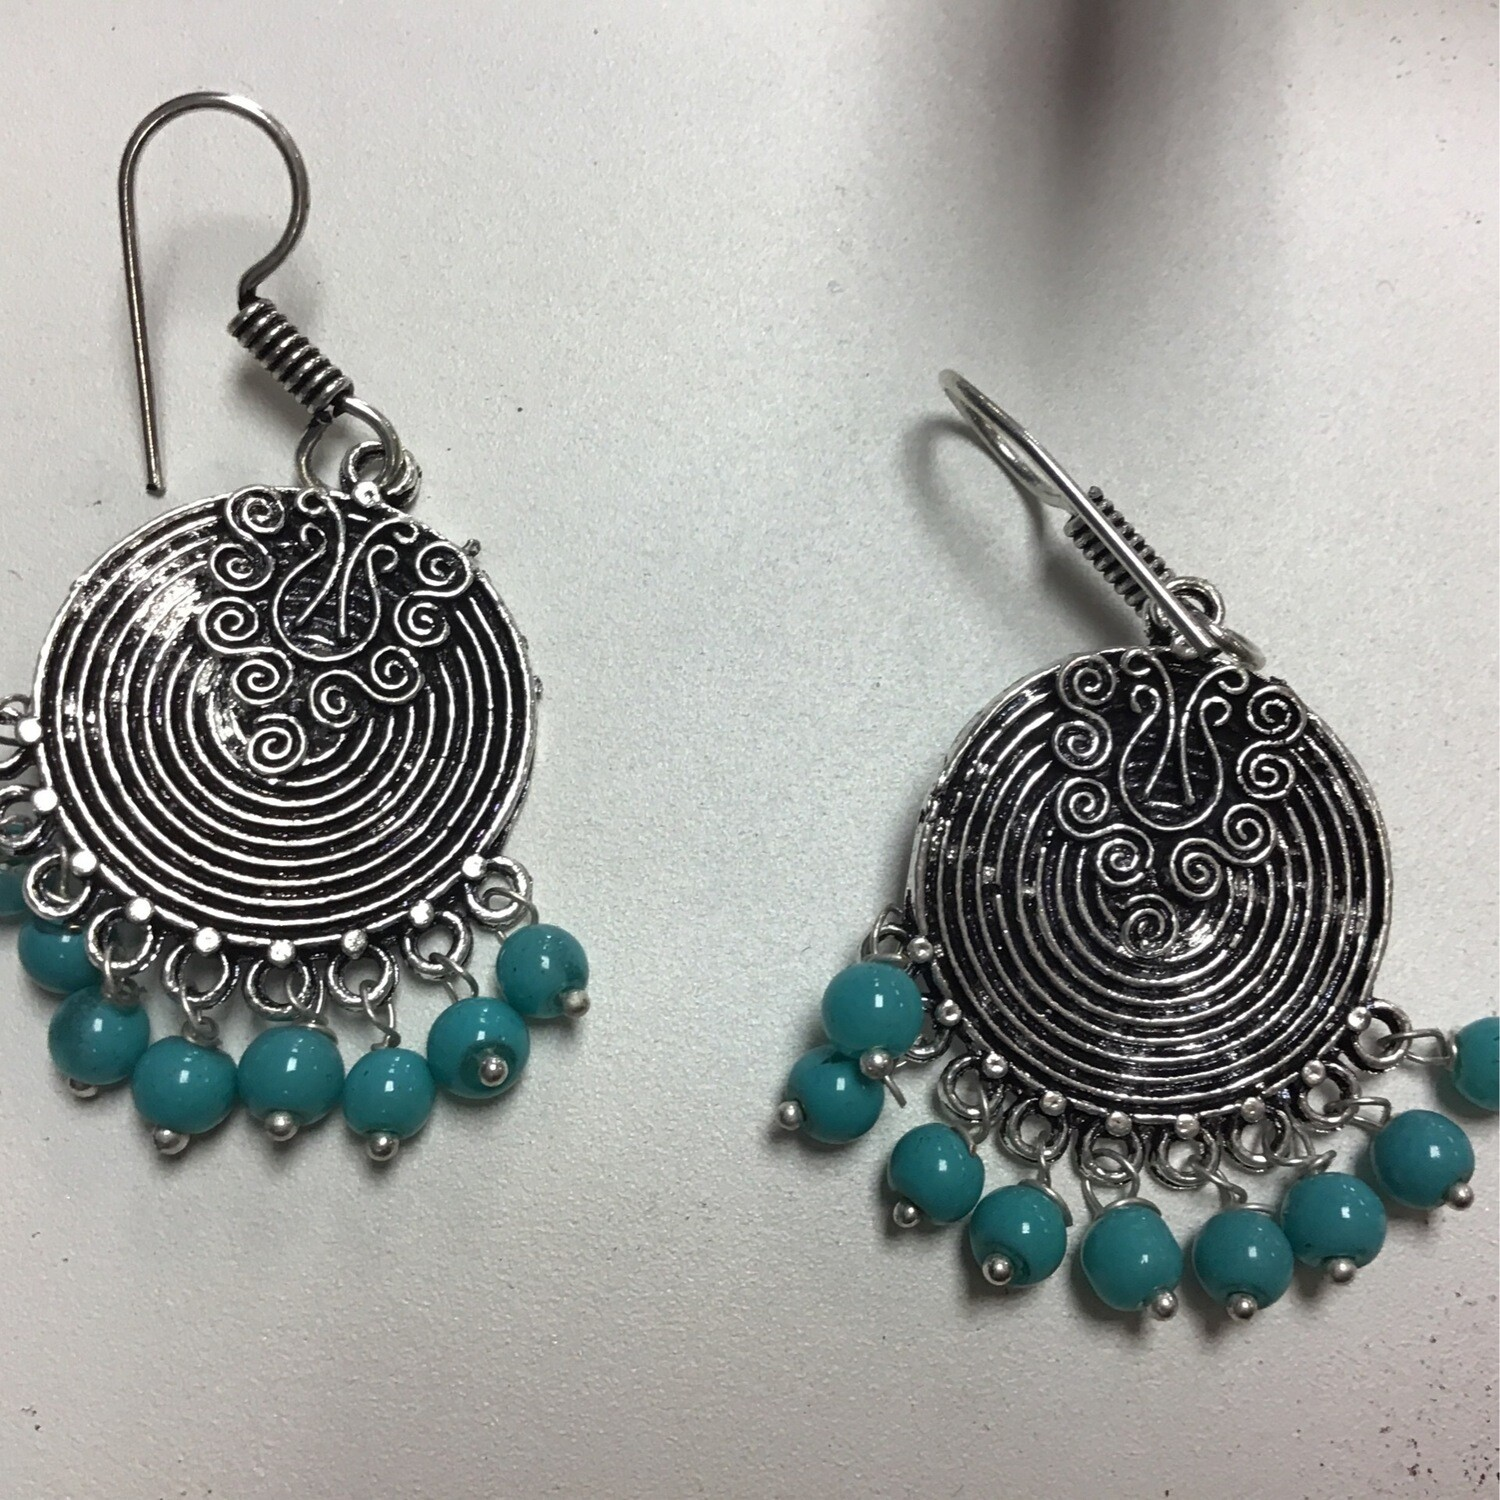 Spiral Earrings With Stones